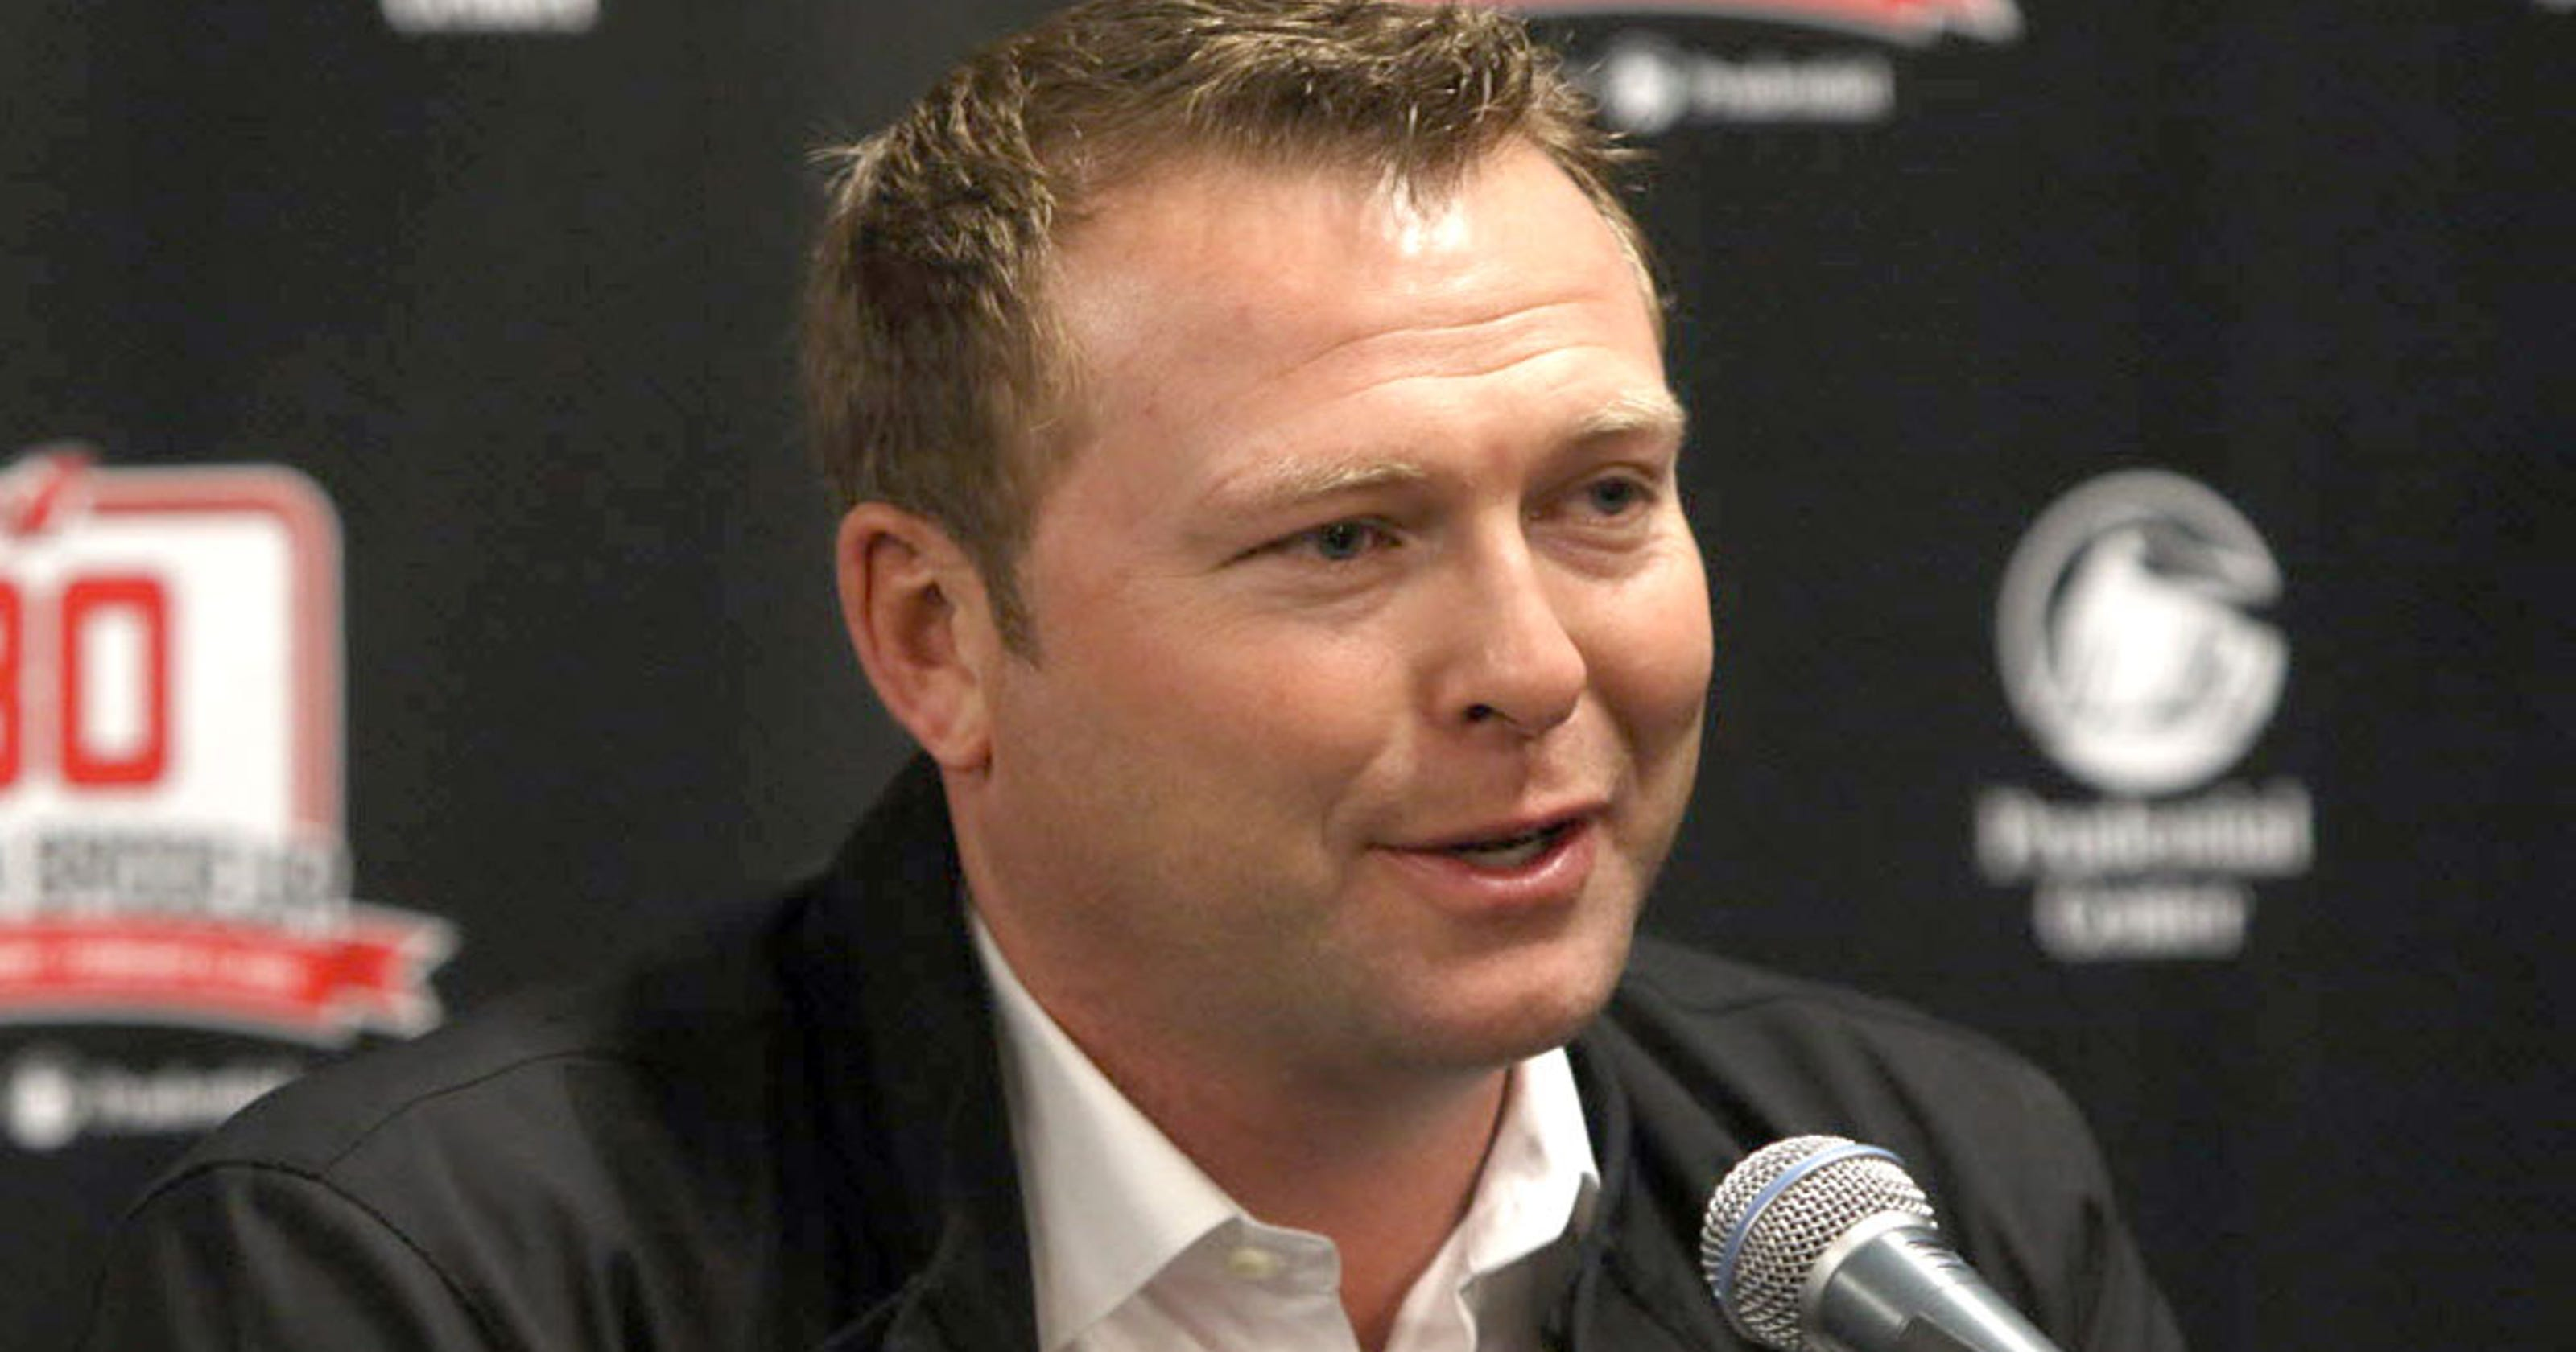 Martin Brodeur Of Nj Devils To Be Inducted Into Hockey Hall Of Fame